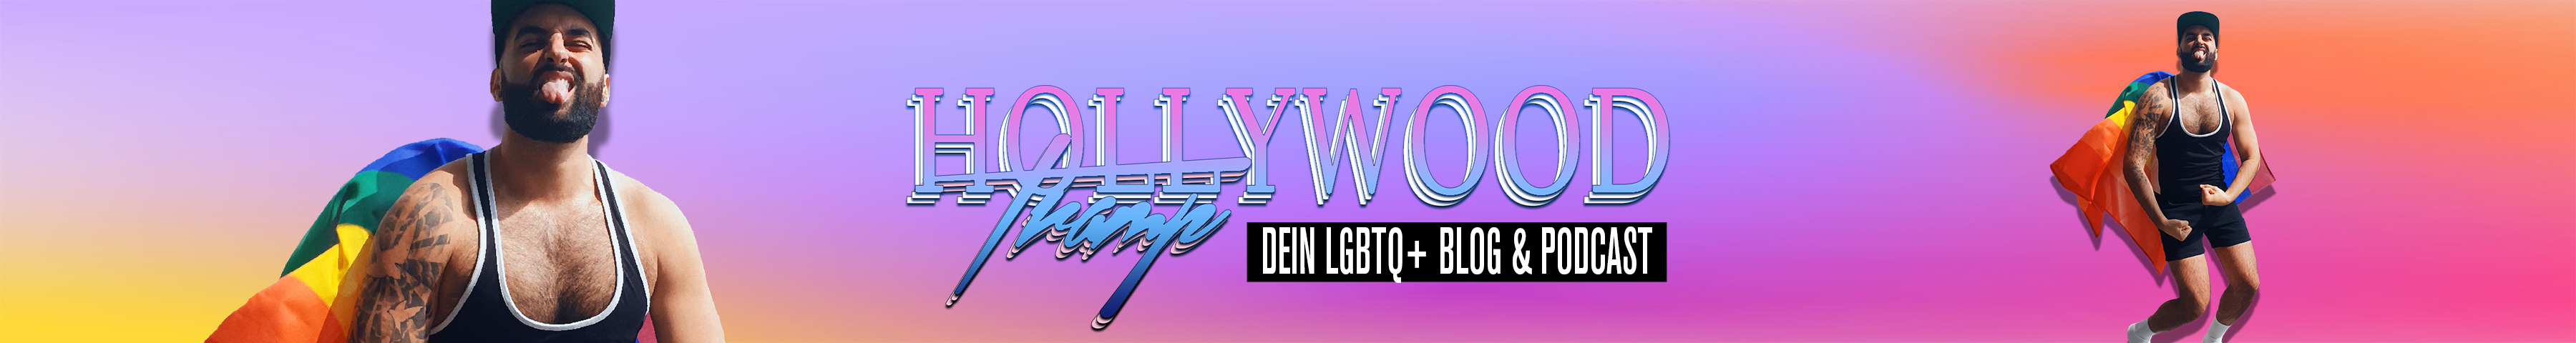 Hollywood Tramp logo